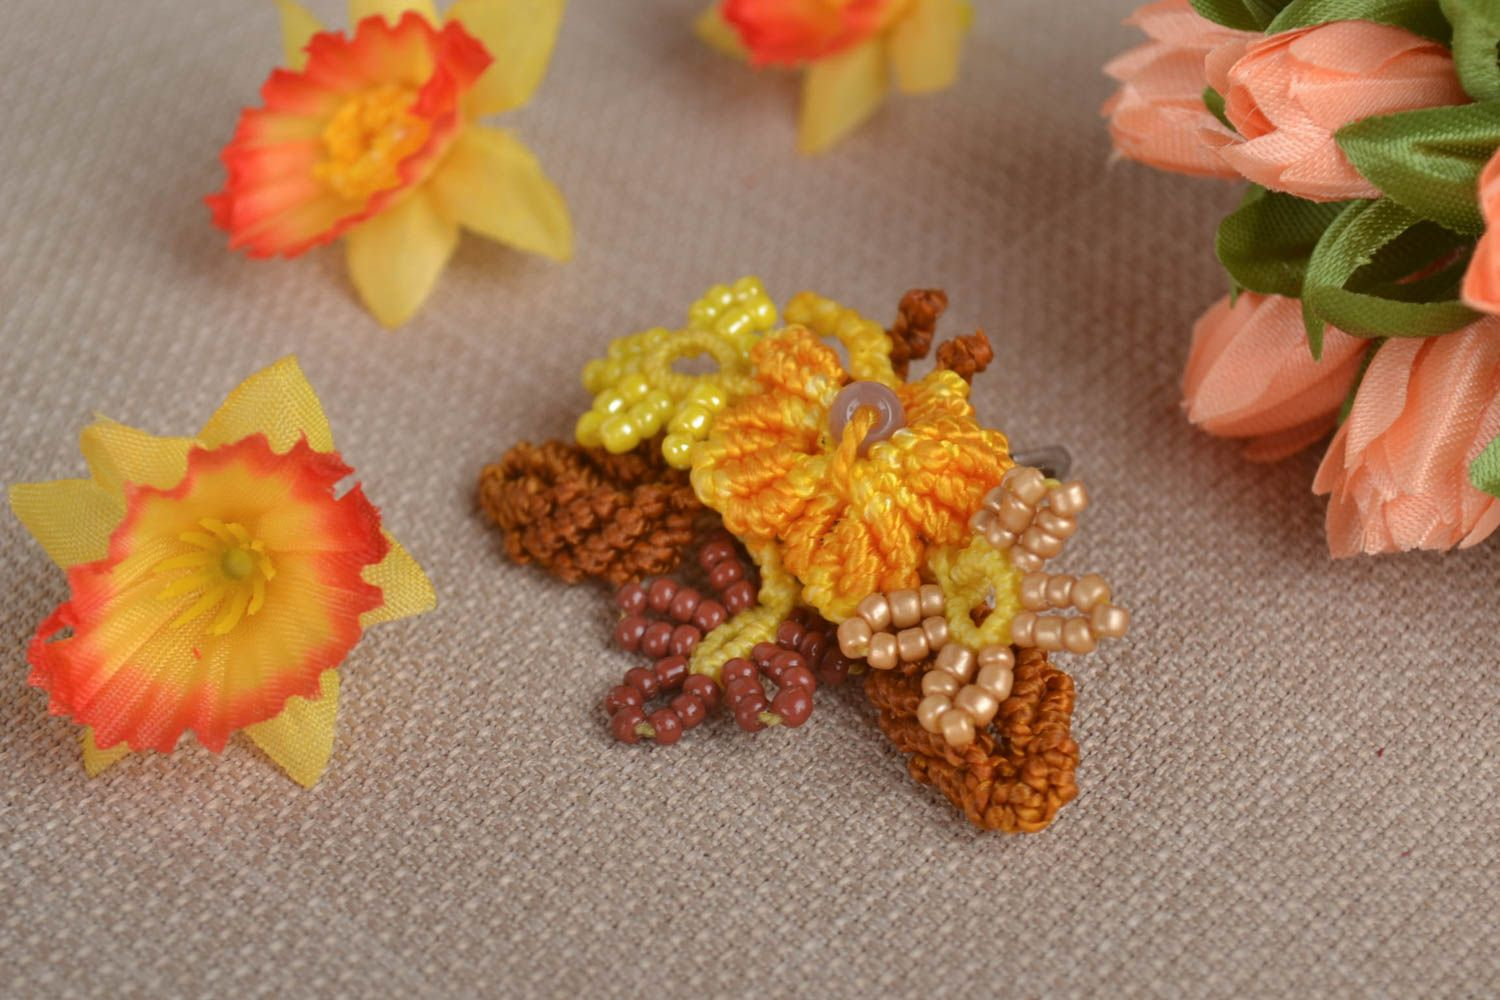 Beautiful handmade woven flower brooch designer brooch pin gifts for her photo 1